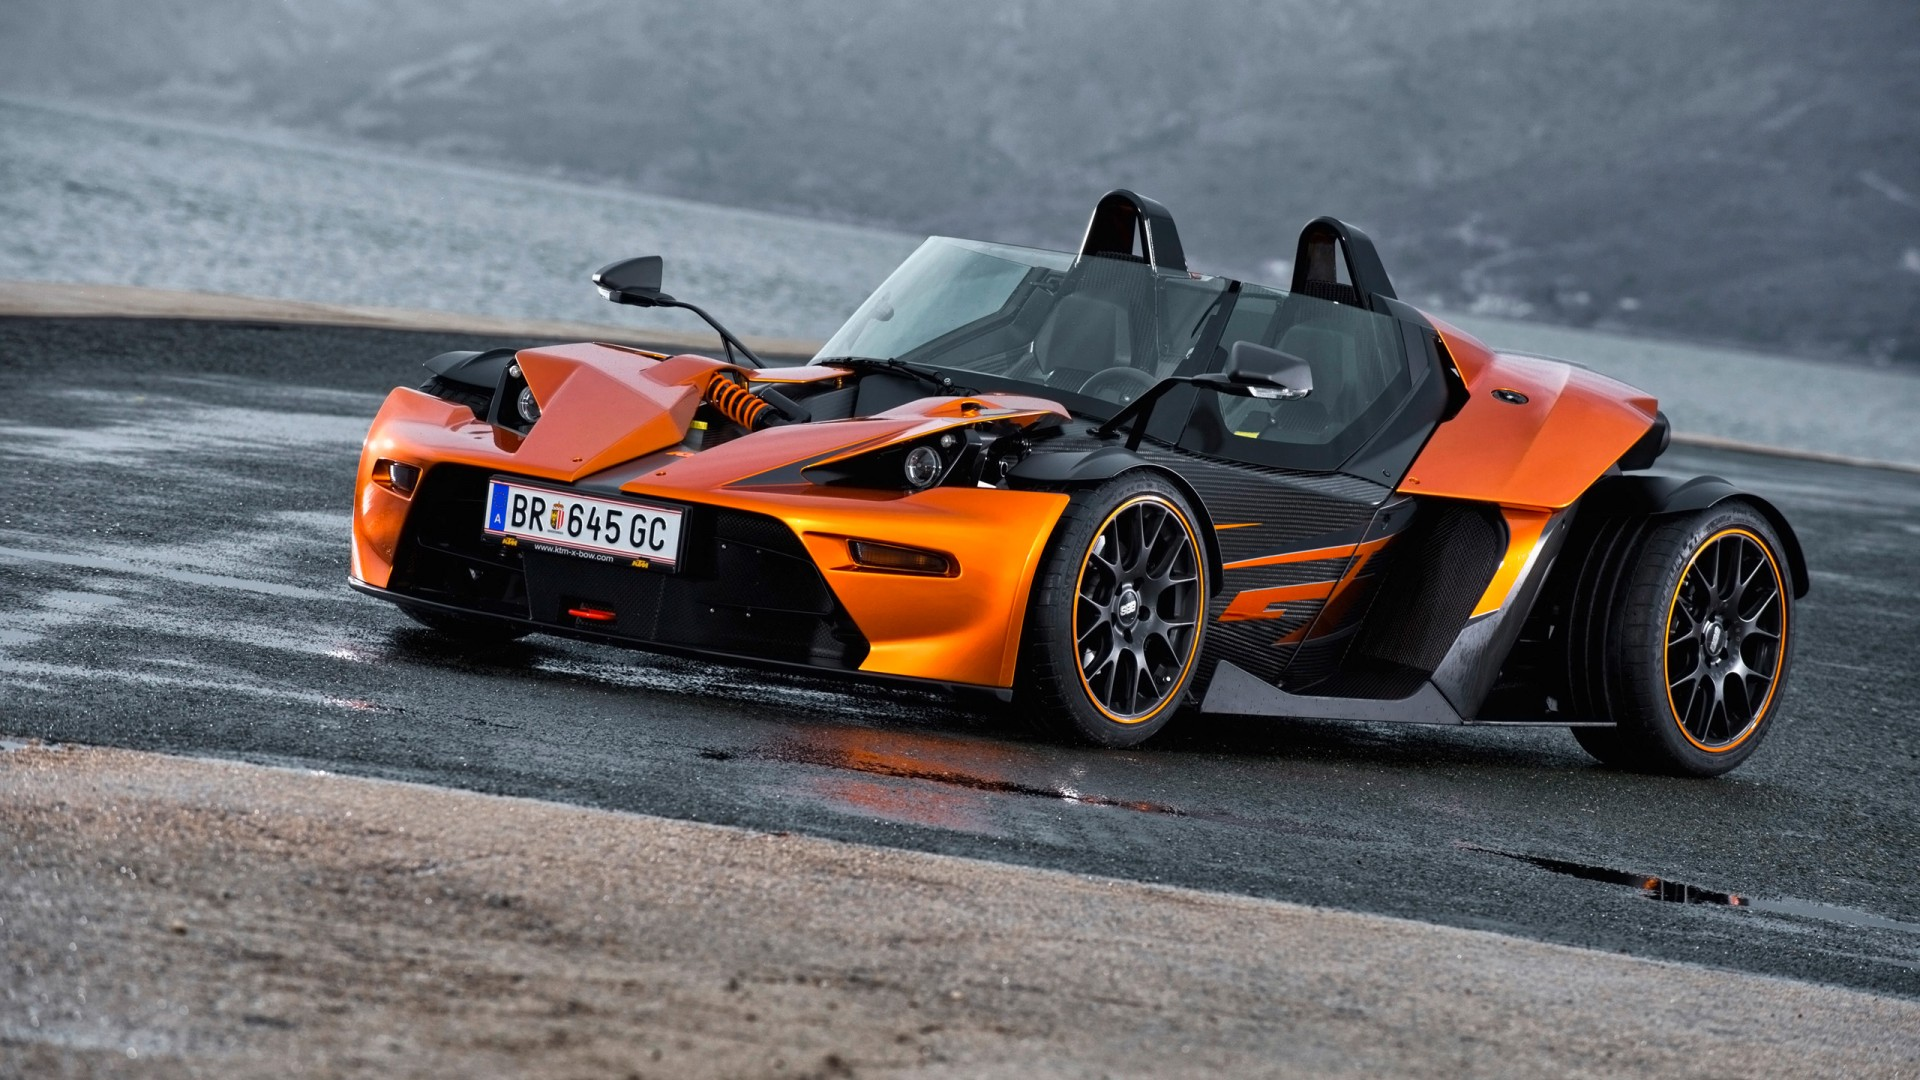 2014 Ktm X Bow Gt Wallpaper Hd Car Wallpapers